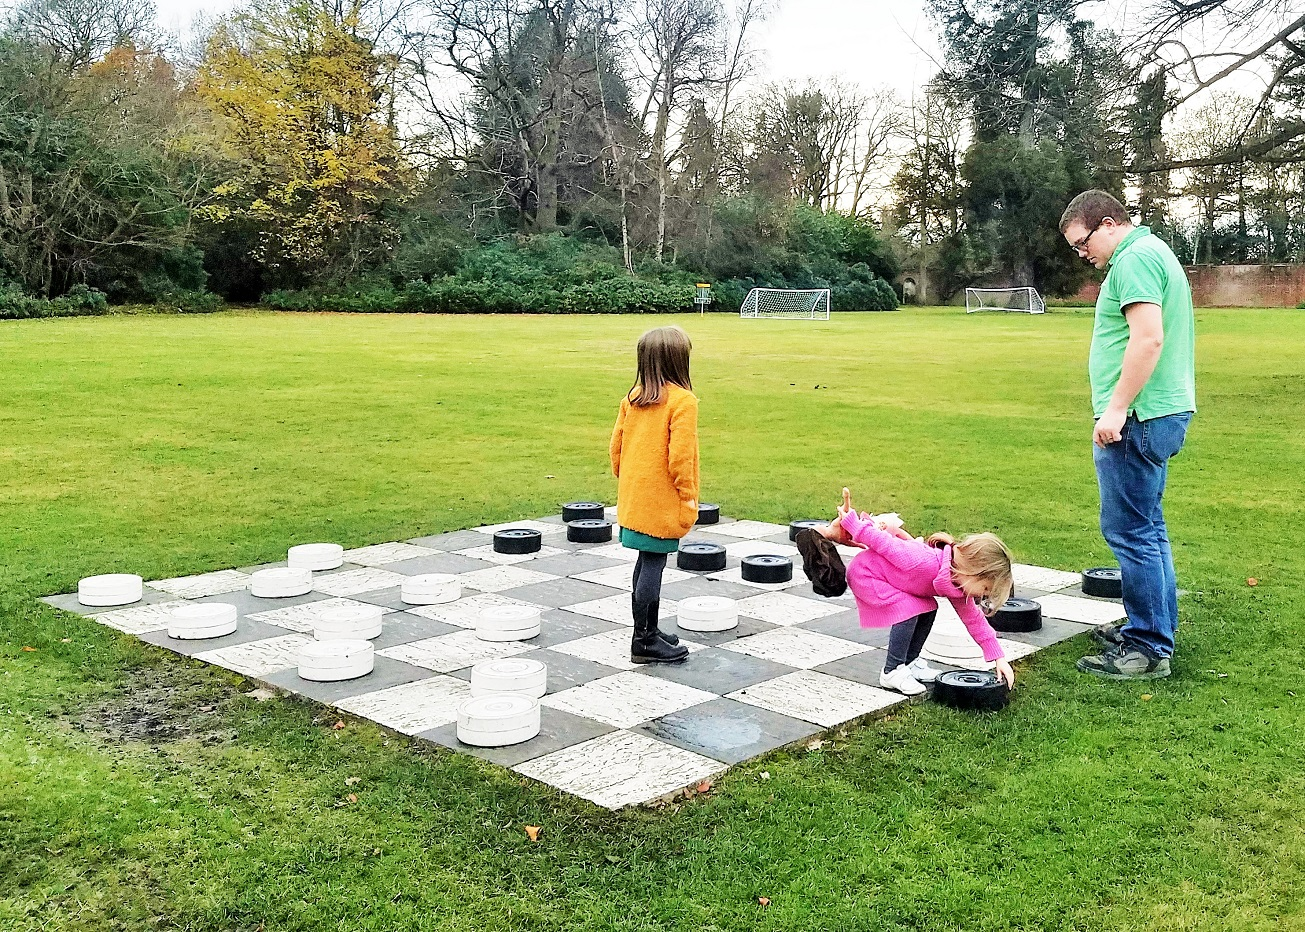 Royal Berkshire Hotel Lapland UK Giant Draughts or Checkers